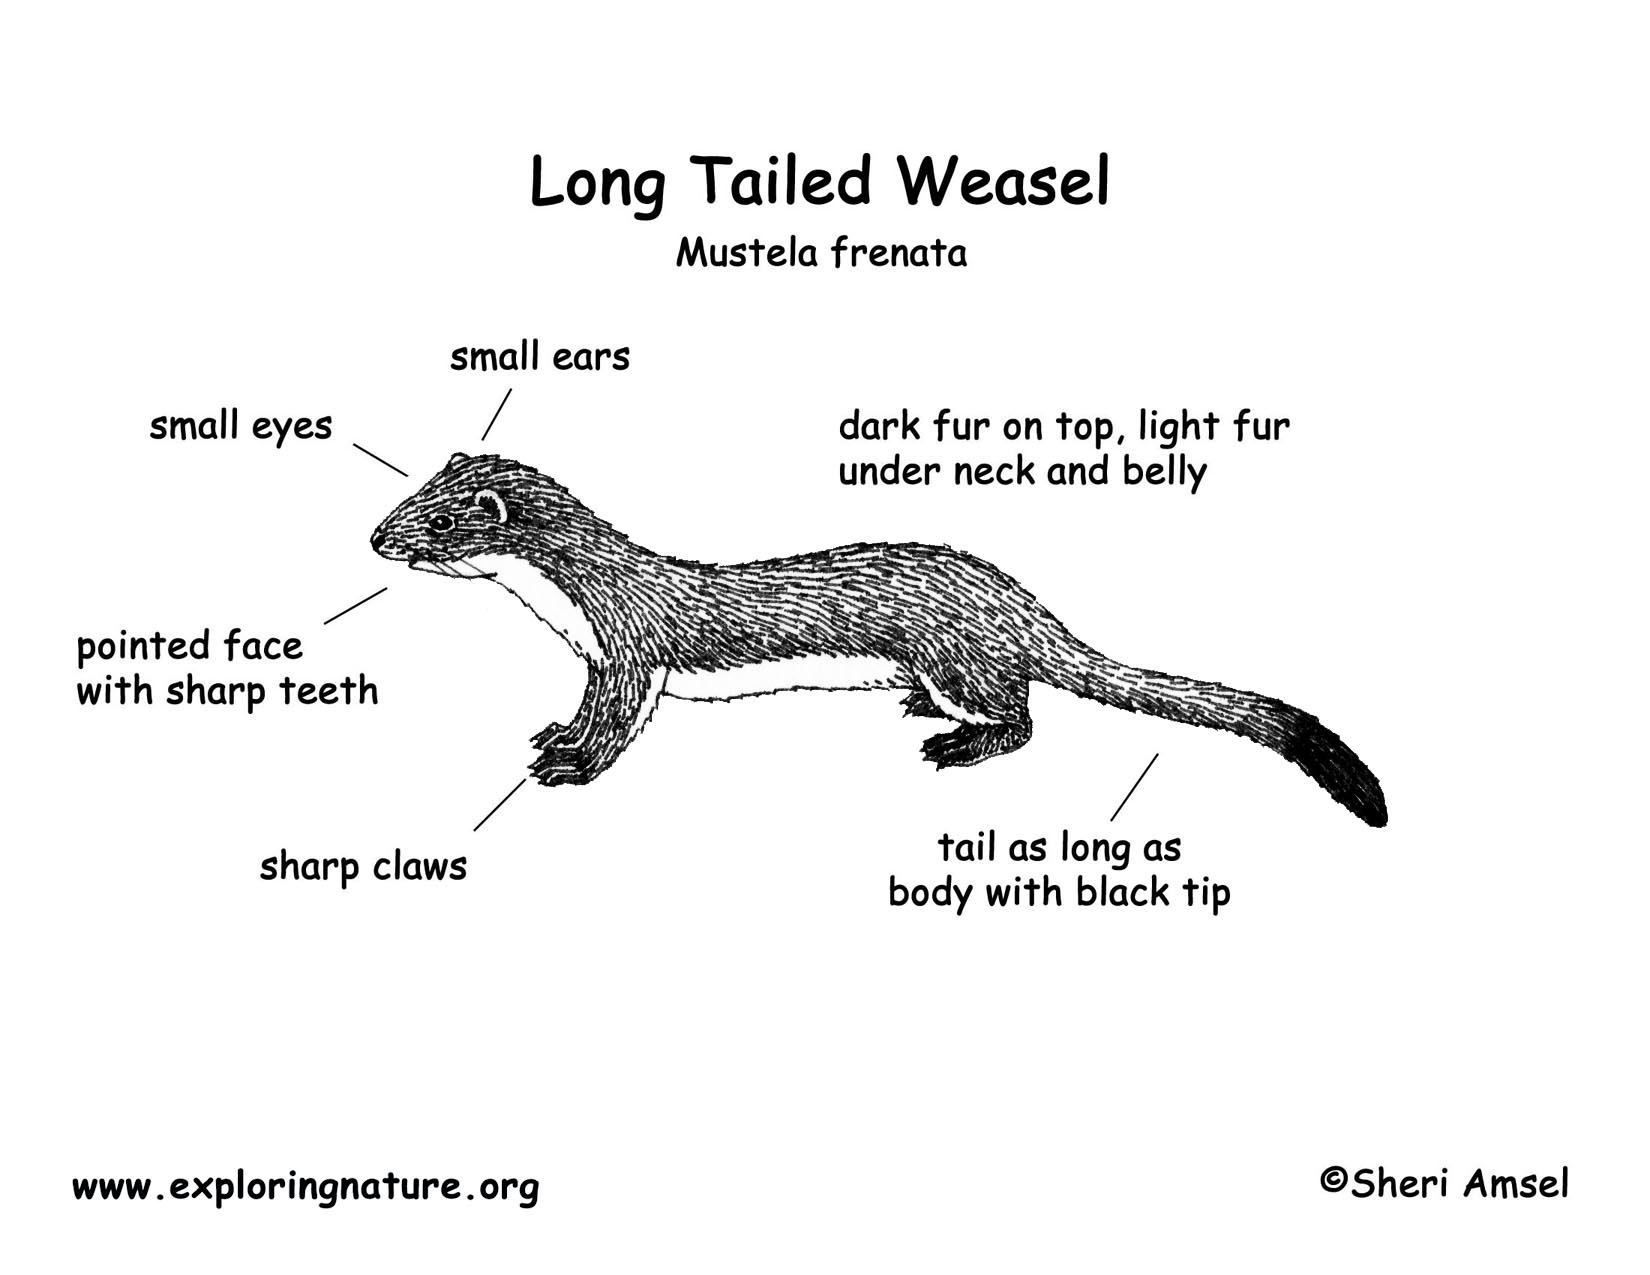 Weasel Longtailed